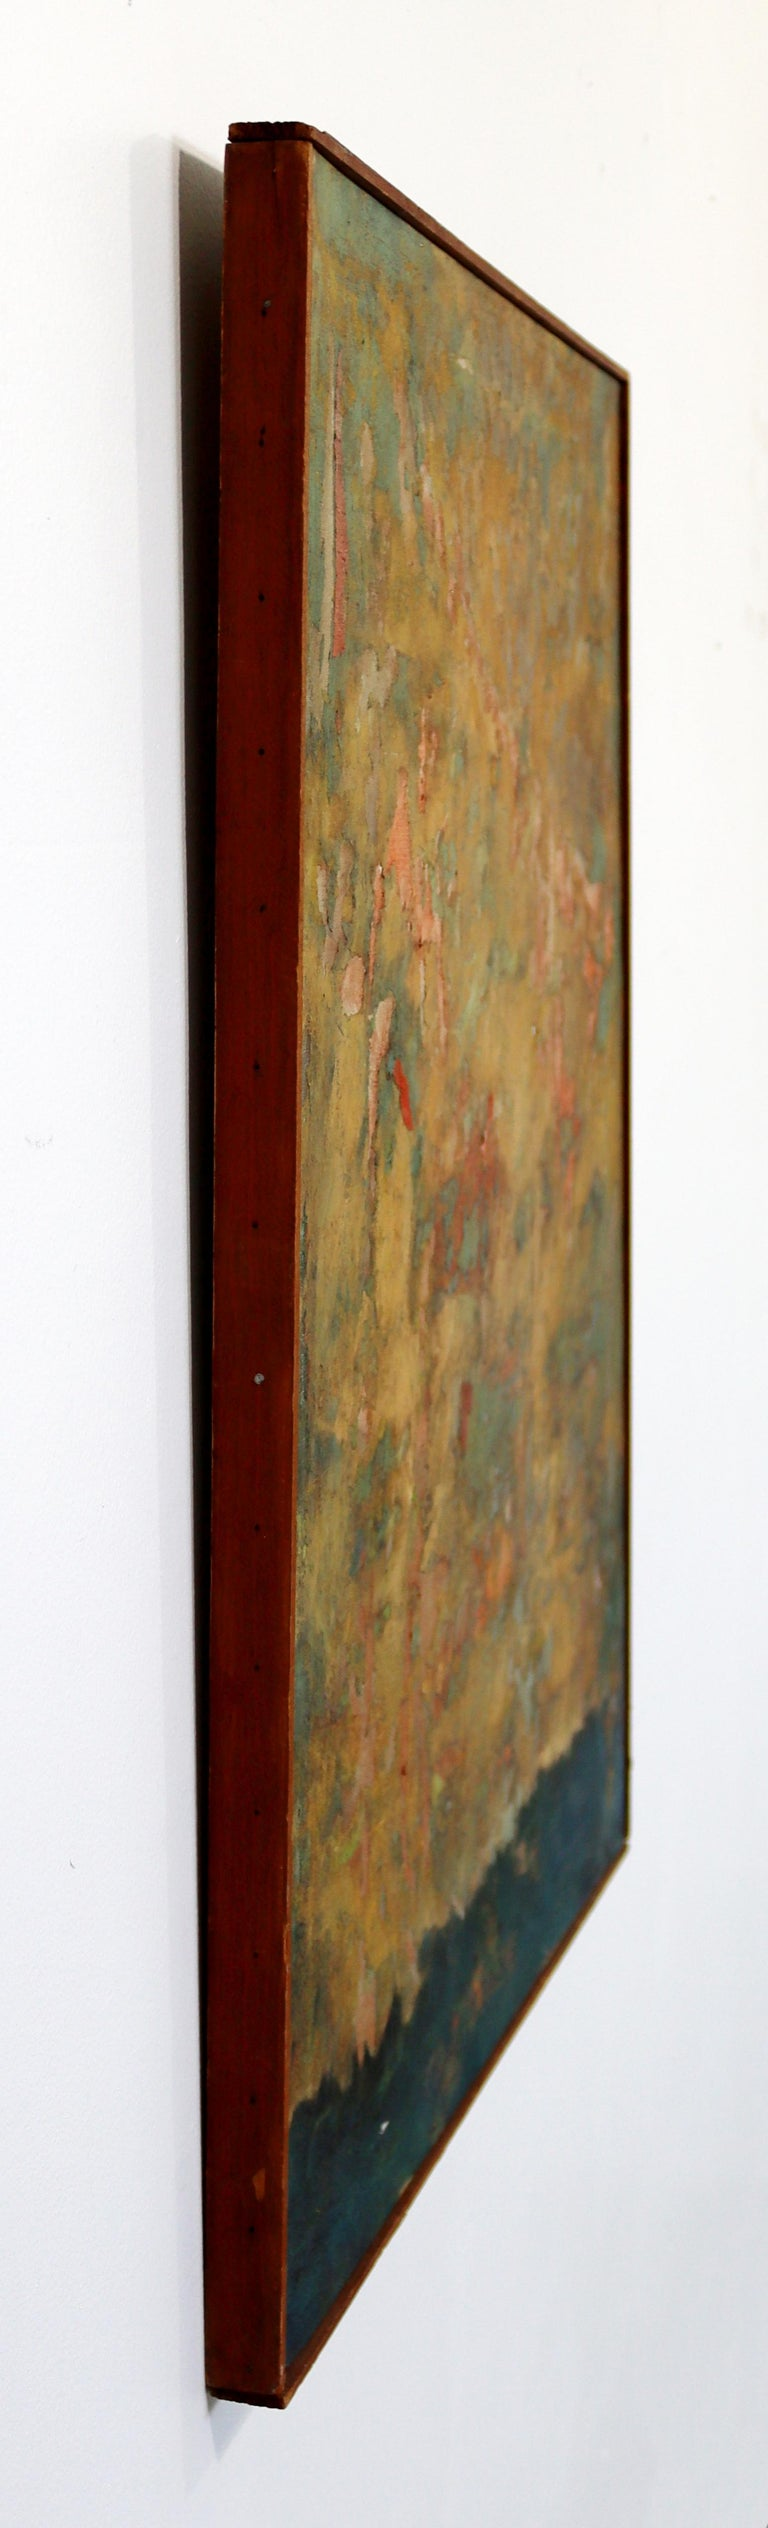 Mid-Century Modern Framed Abstract Oil Painting on Canvas Signed Mable Moss 60s In Good Condition For Sale In Keego Harbor, MI